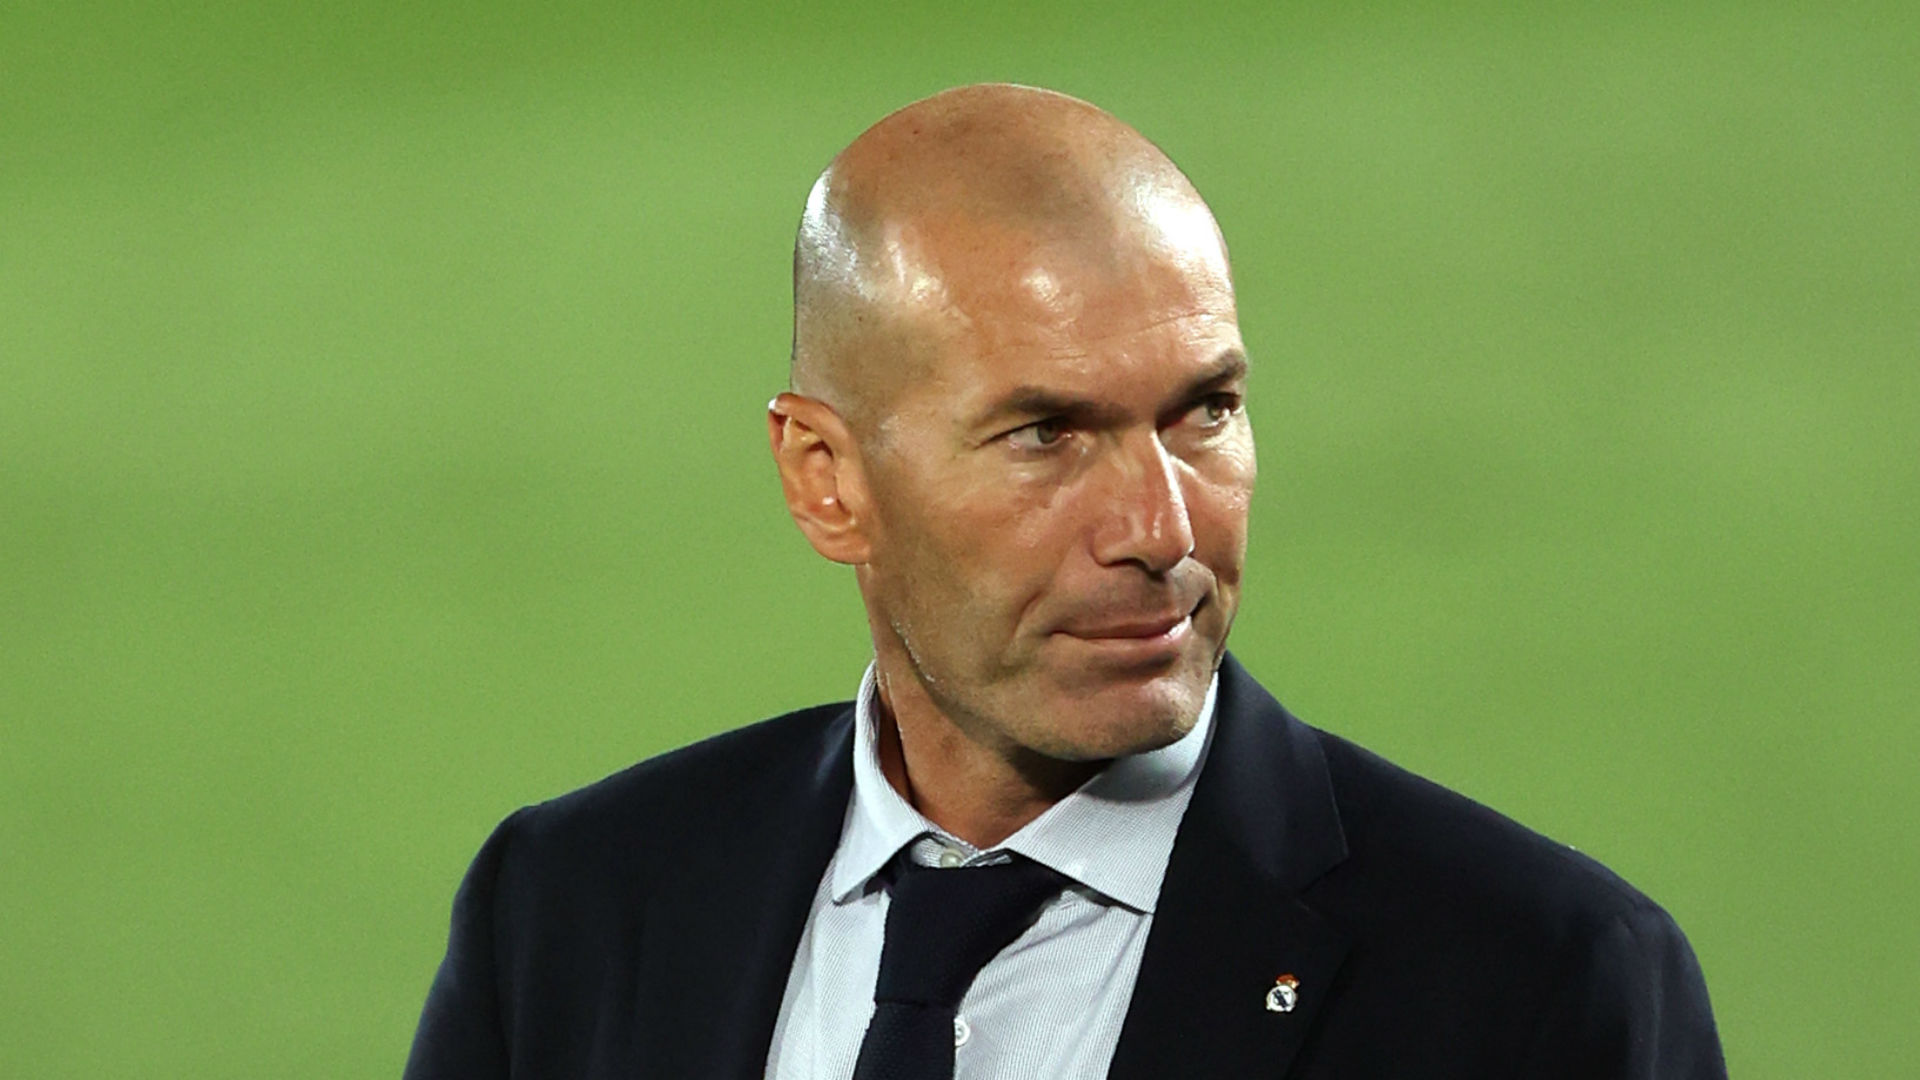 Real Madrid can come back to beat Man City, says Seedorf